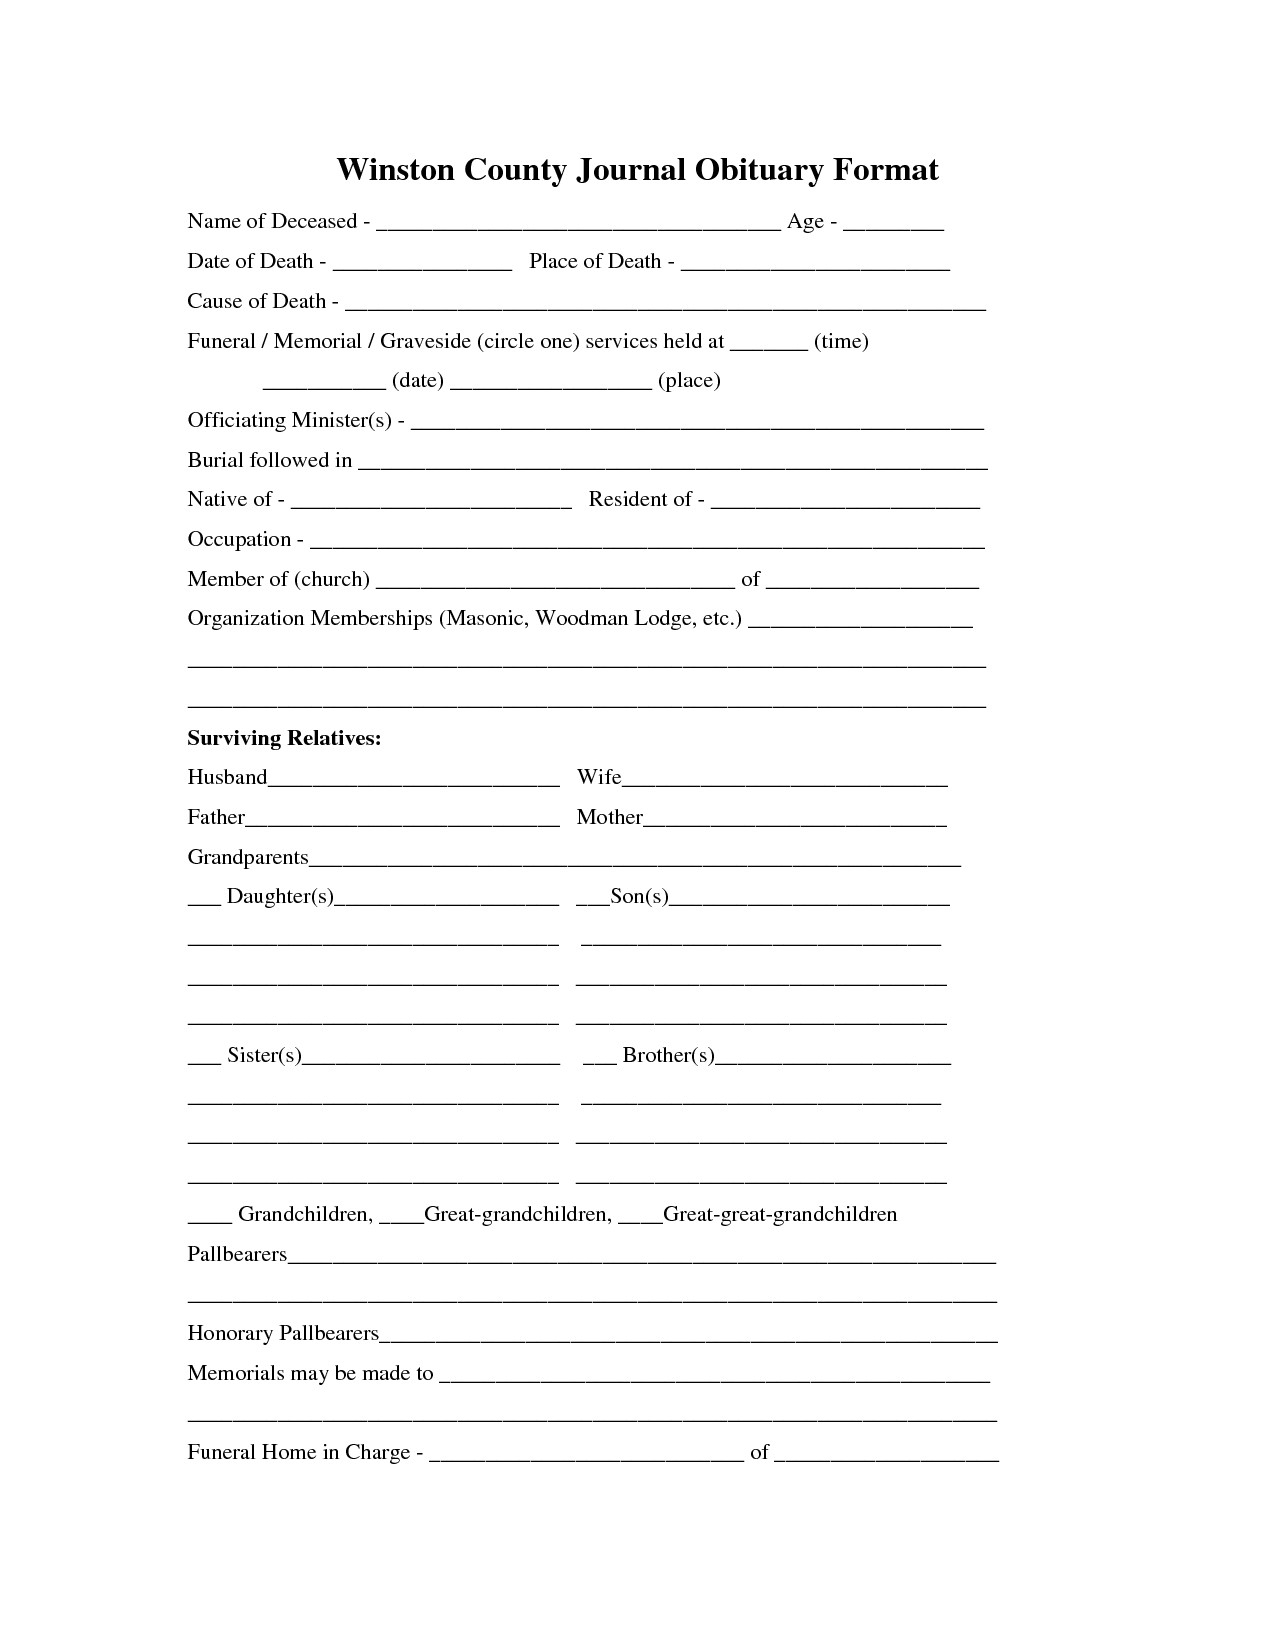 30 Obituary Template For Free | Andaluzseattle Template Example In Free Obituary Template For Microsoft Word